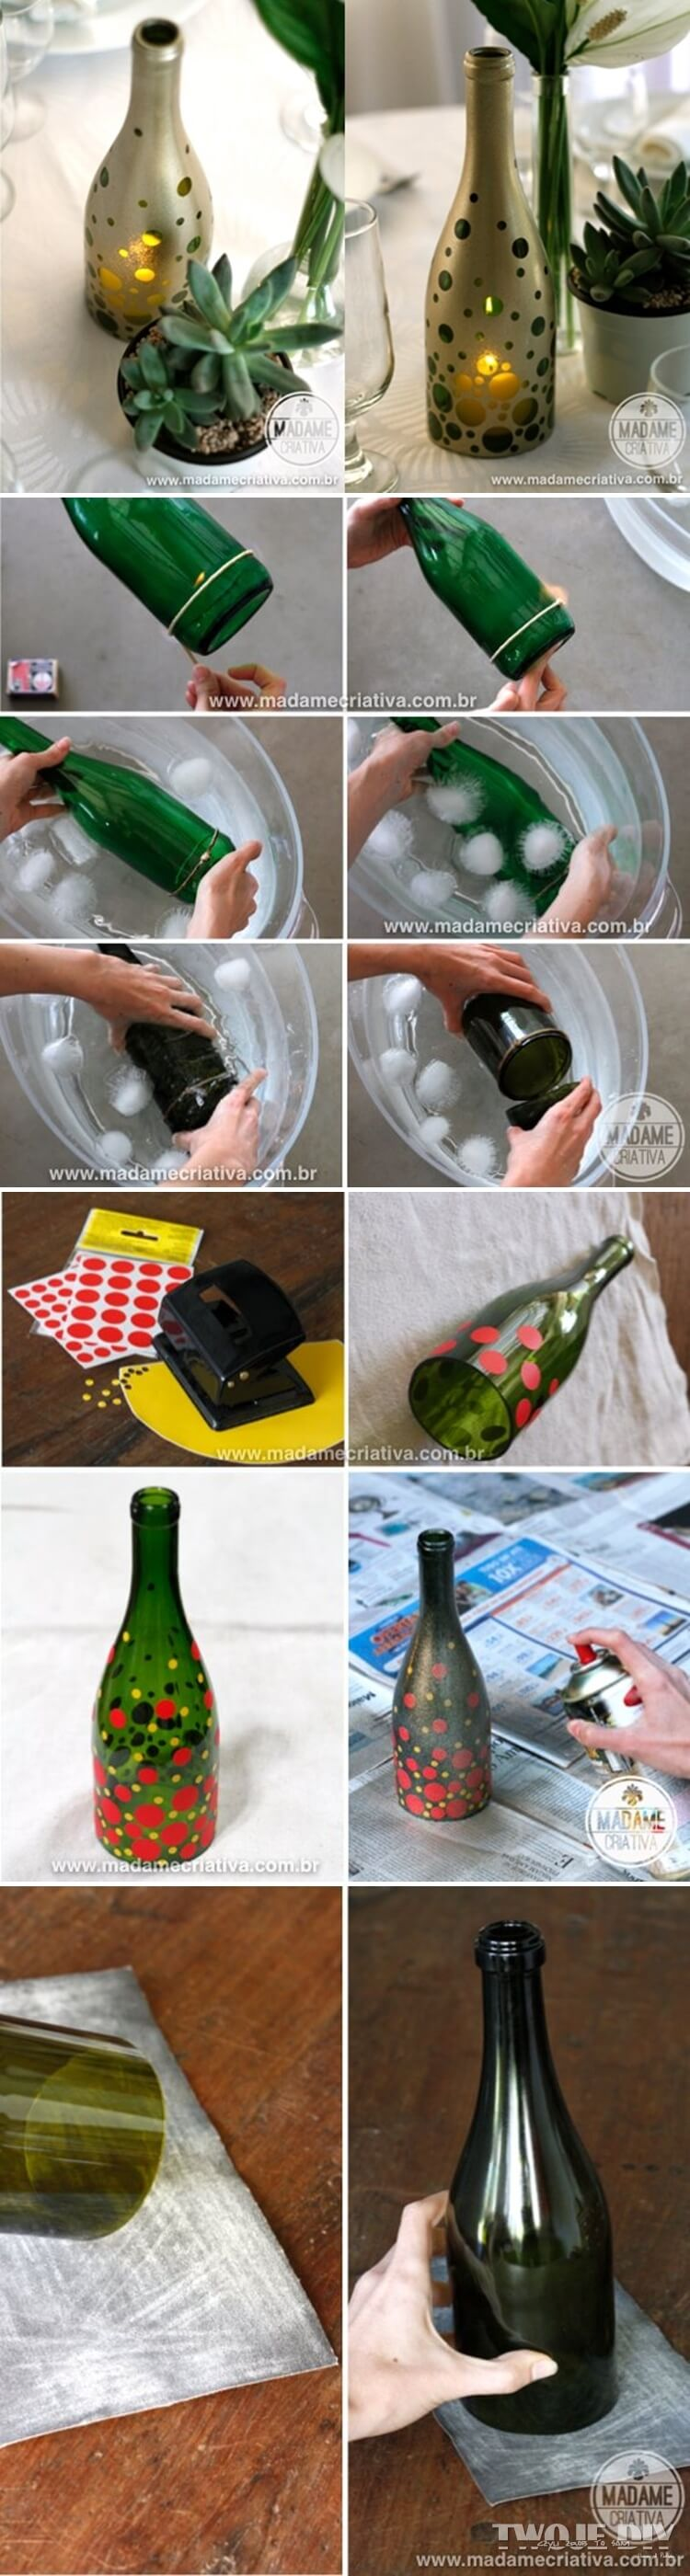 50 Best Repurposed Diy Wine Bottle Craft Ideas And Designs For 2021